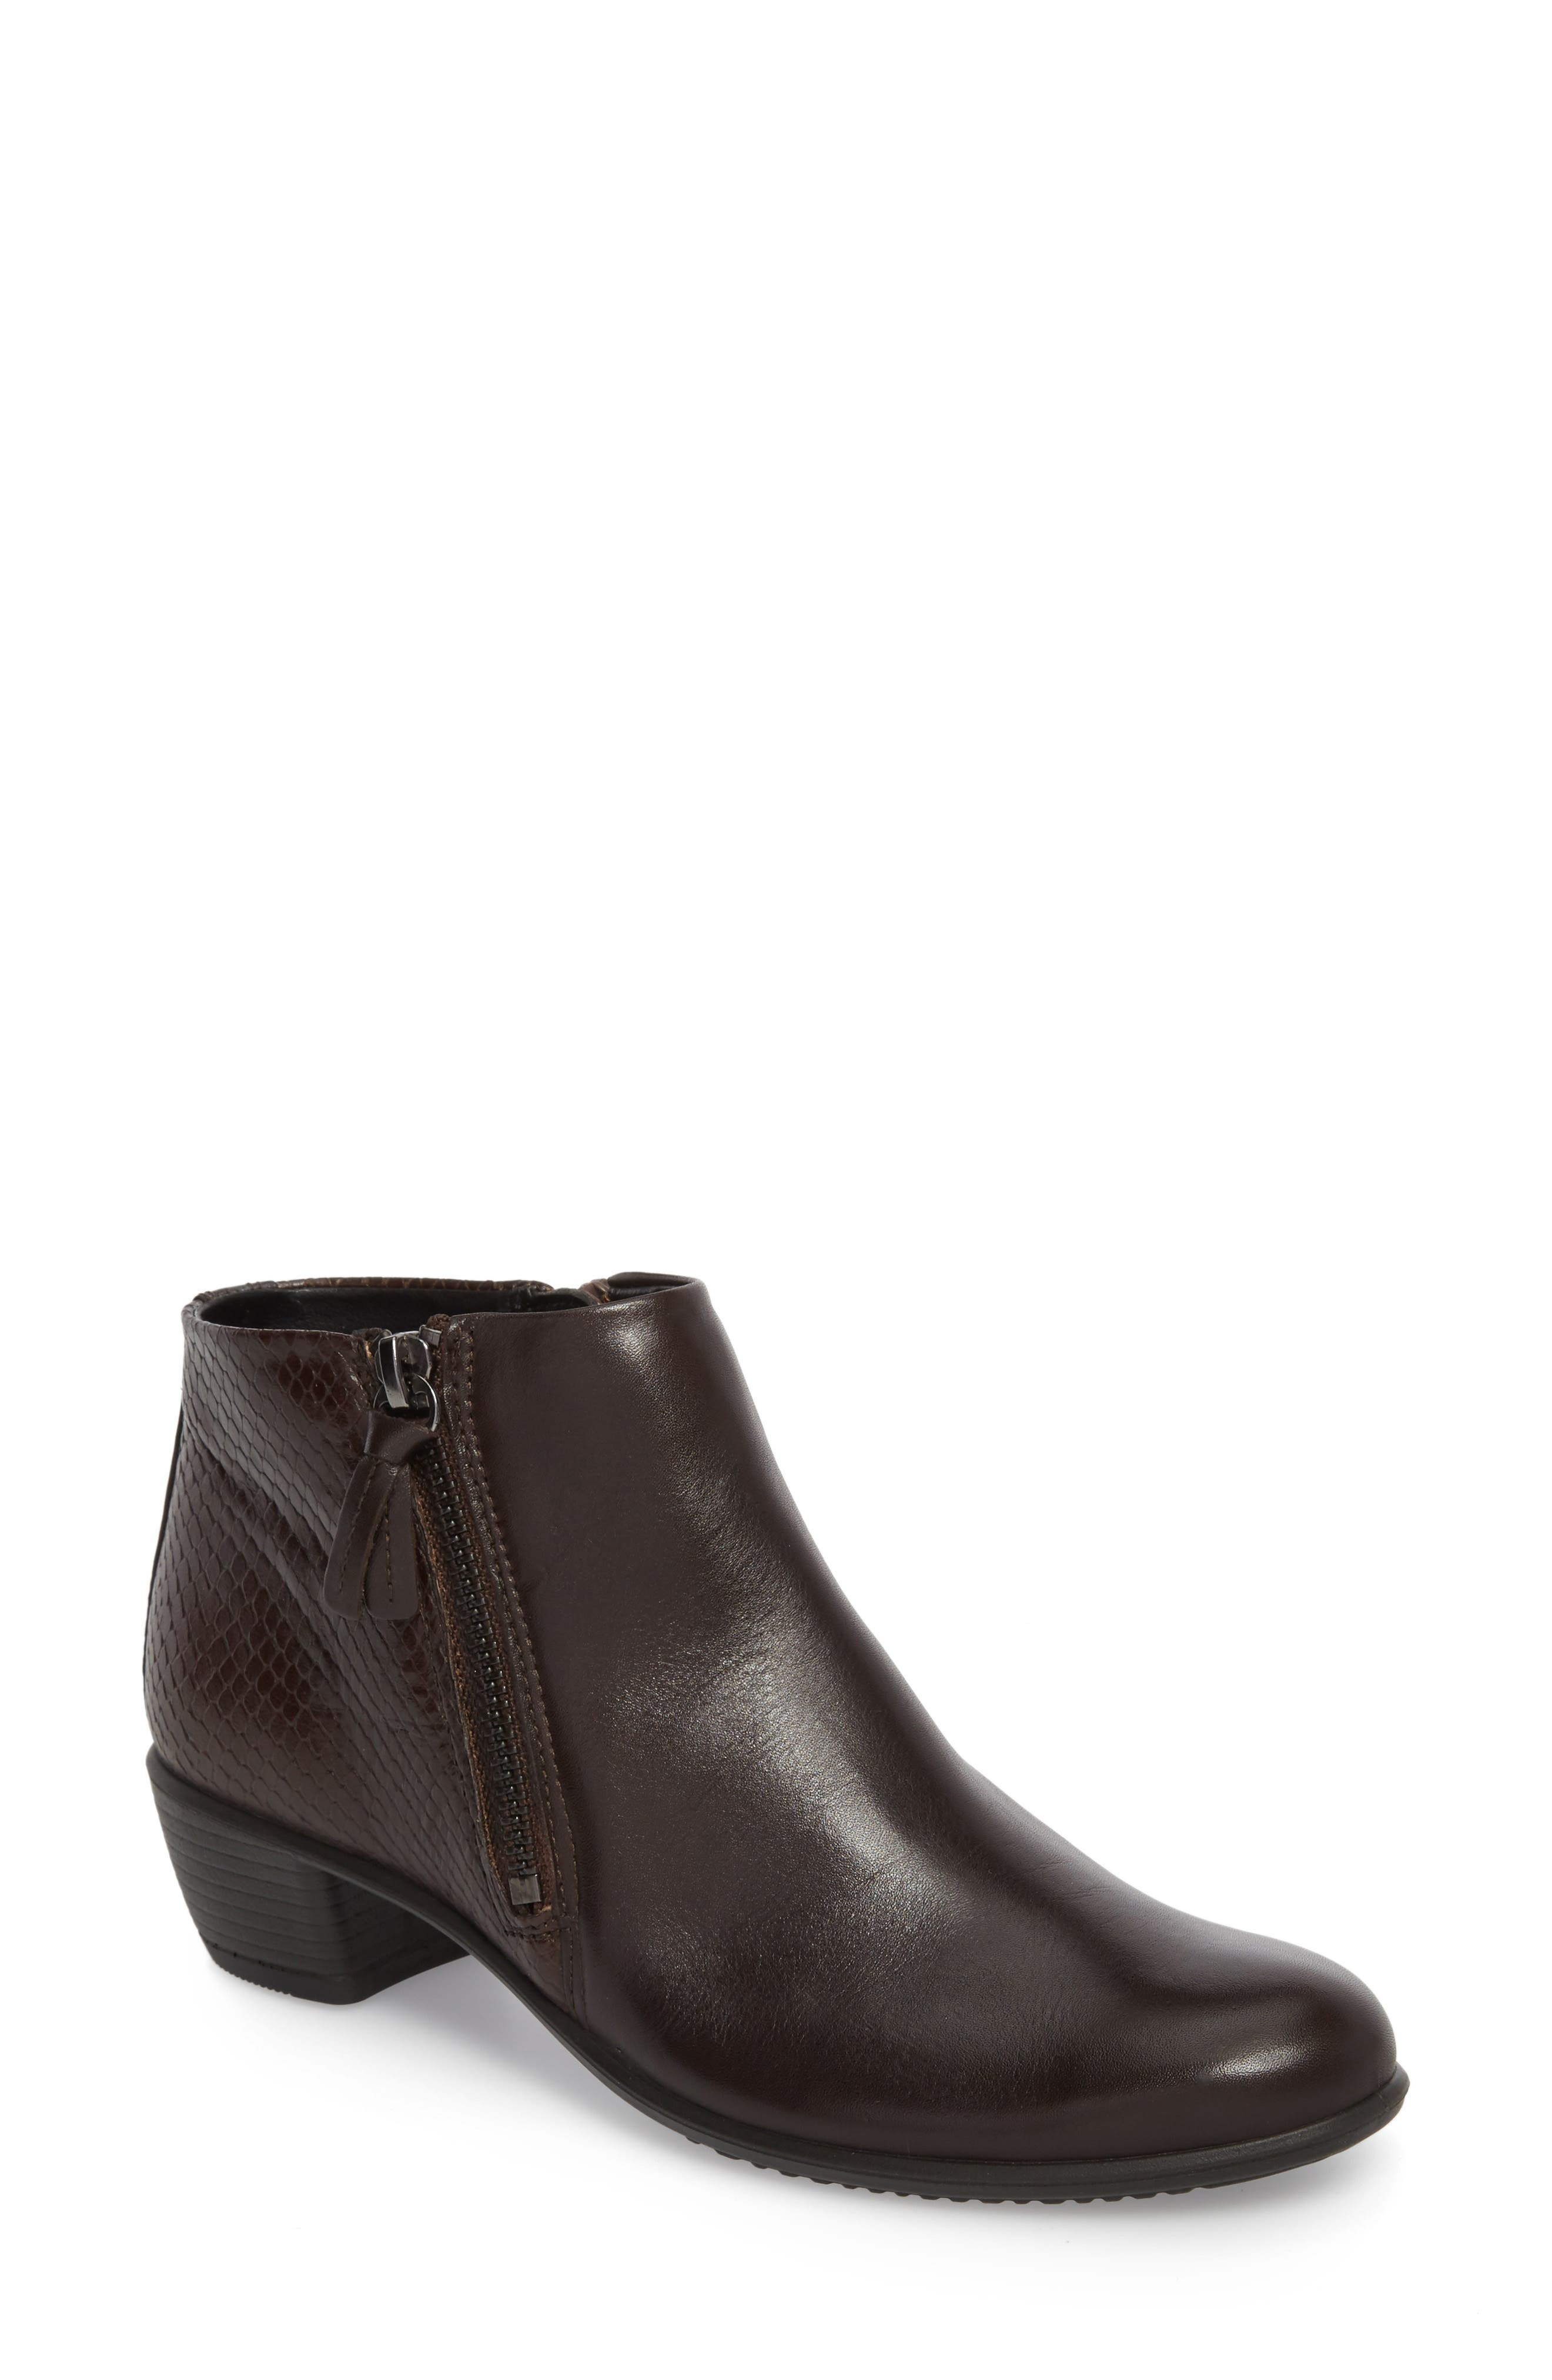 'Touch' Zip Bootie,                             Main thumbnail 1, color,                             Coffee Leather